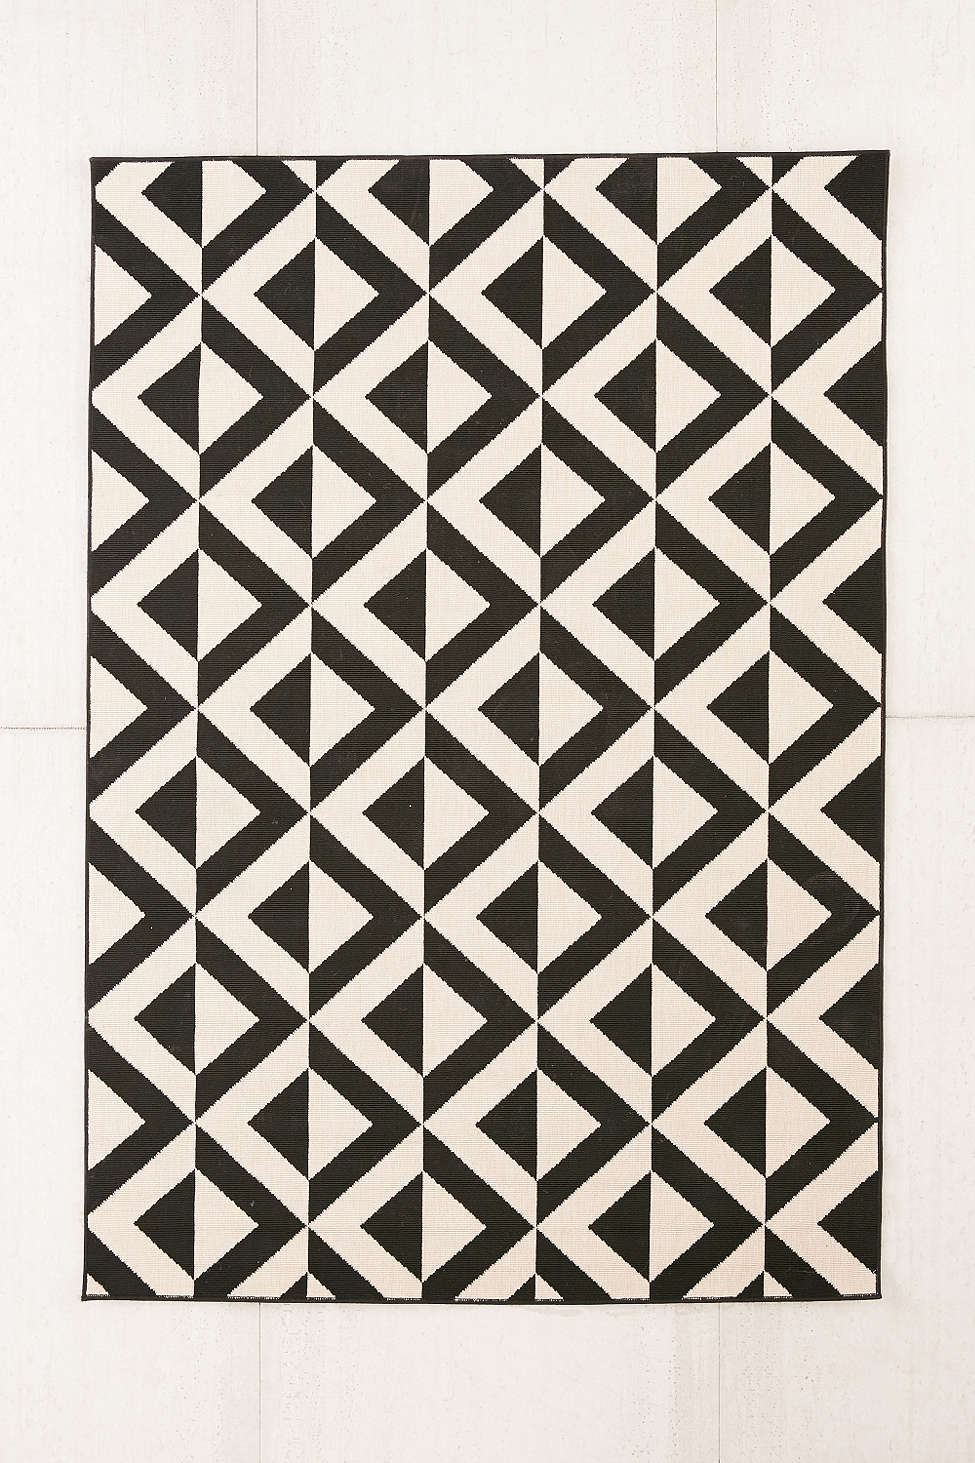 Black and white indoor-outdoor rug from Urban Outfitters